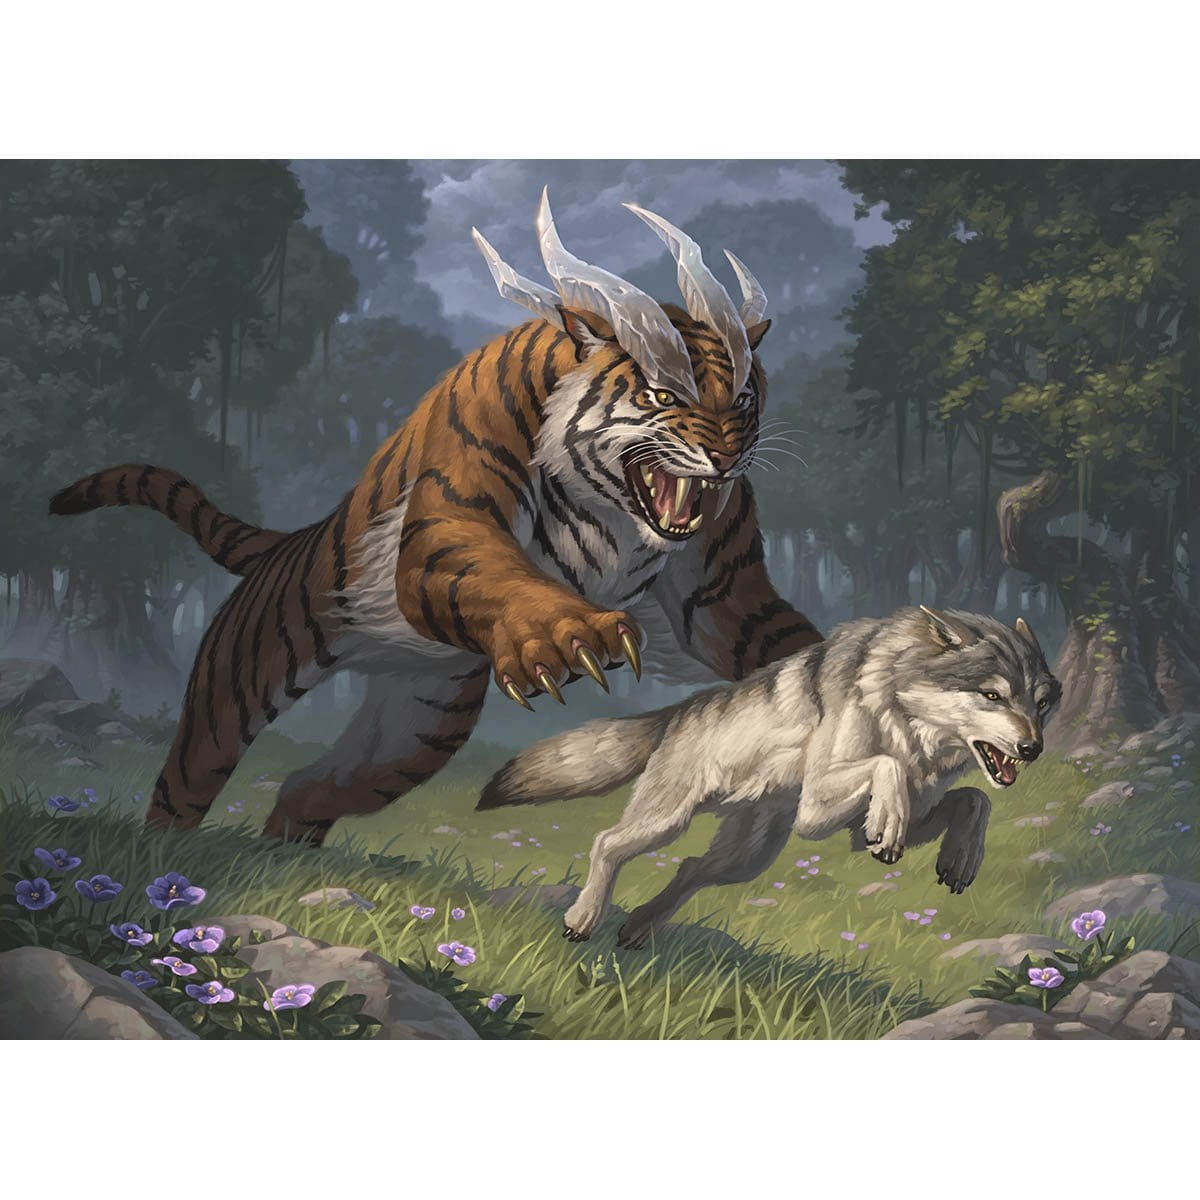 Food Chain Print - Print - Original Magic Art - Accessories for Magic the Gathering and other card games